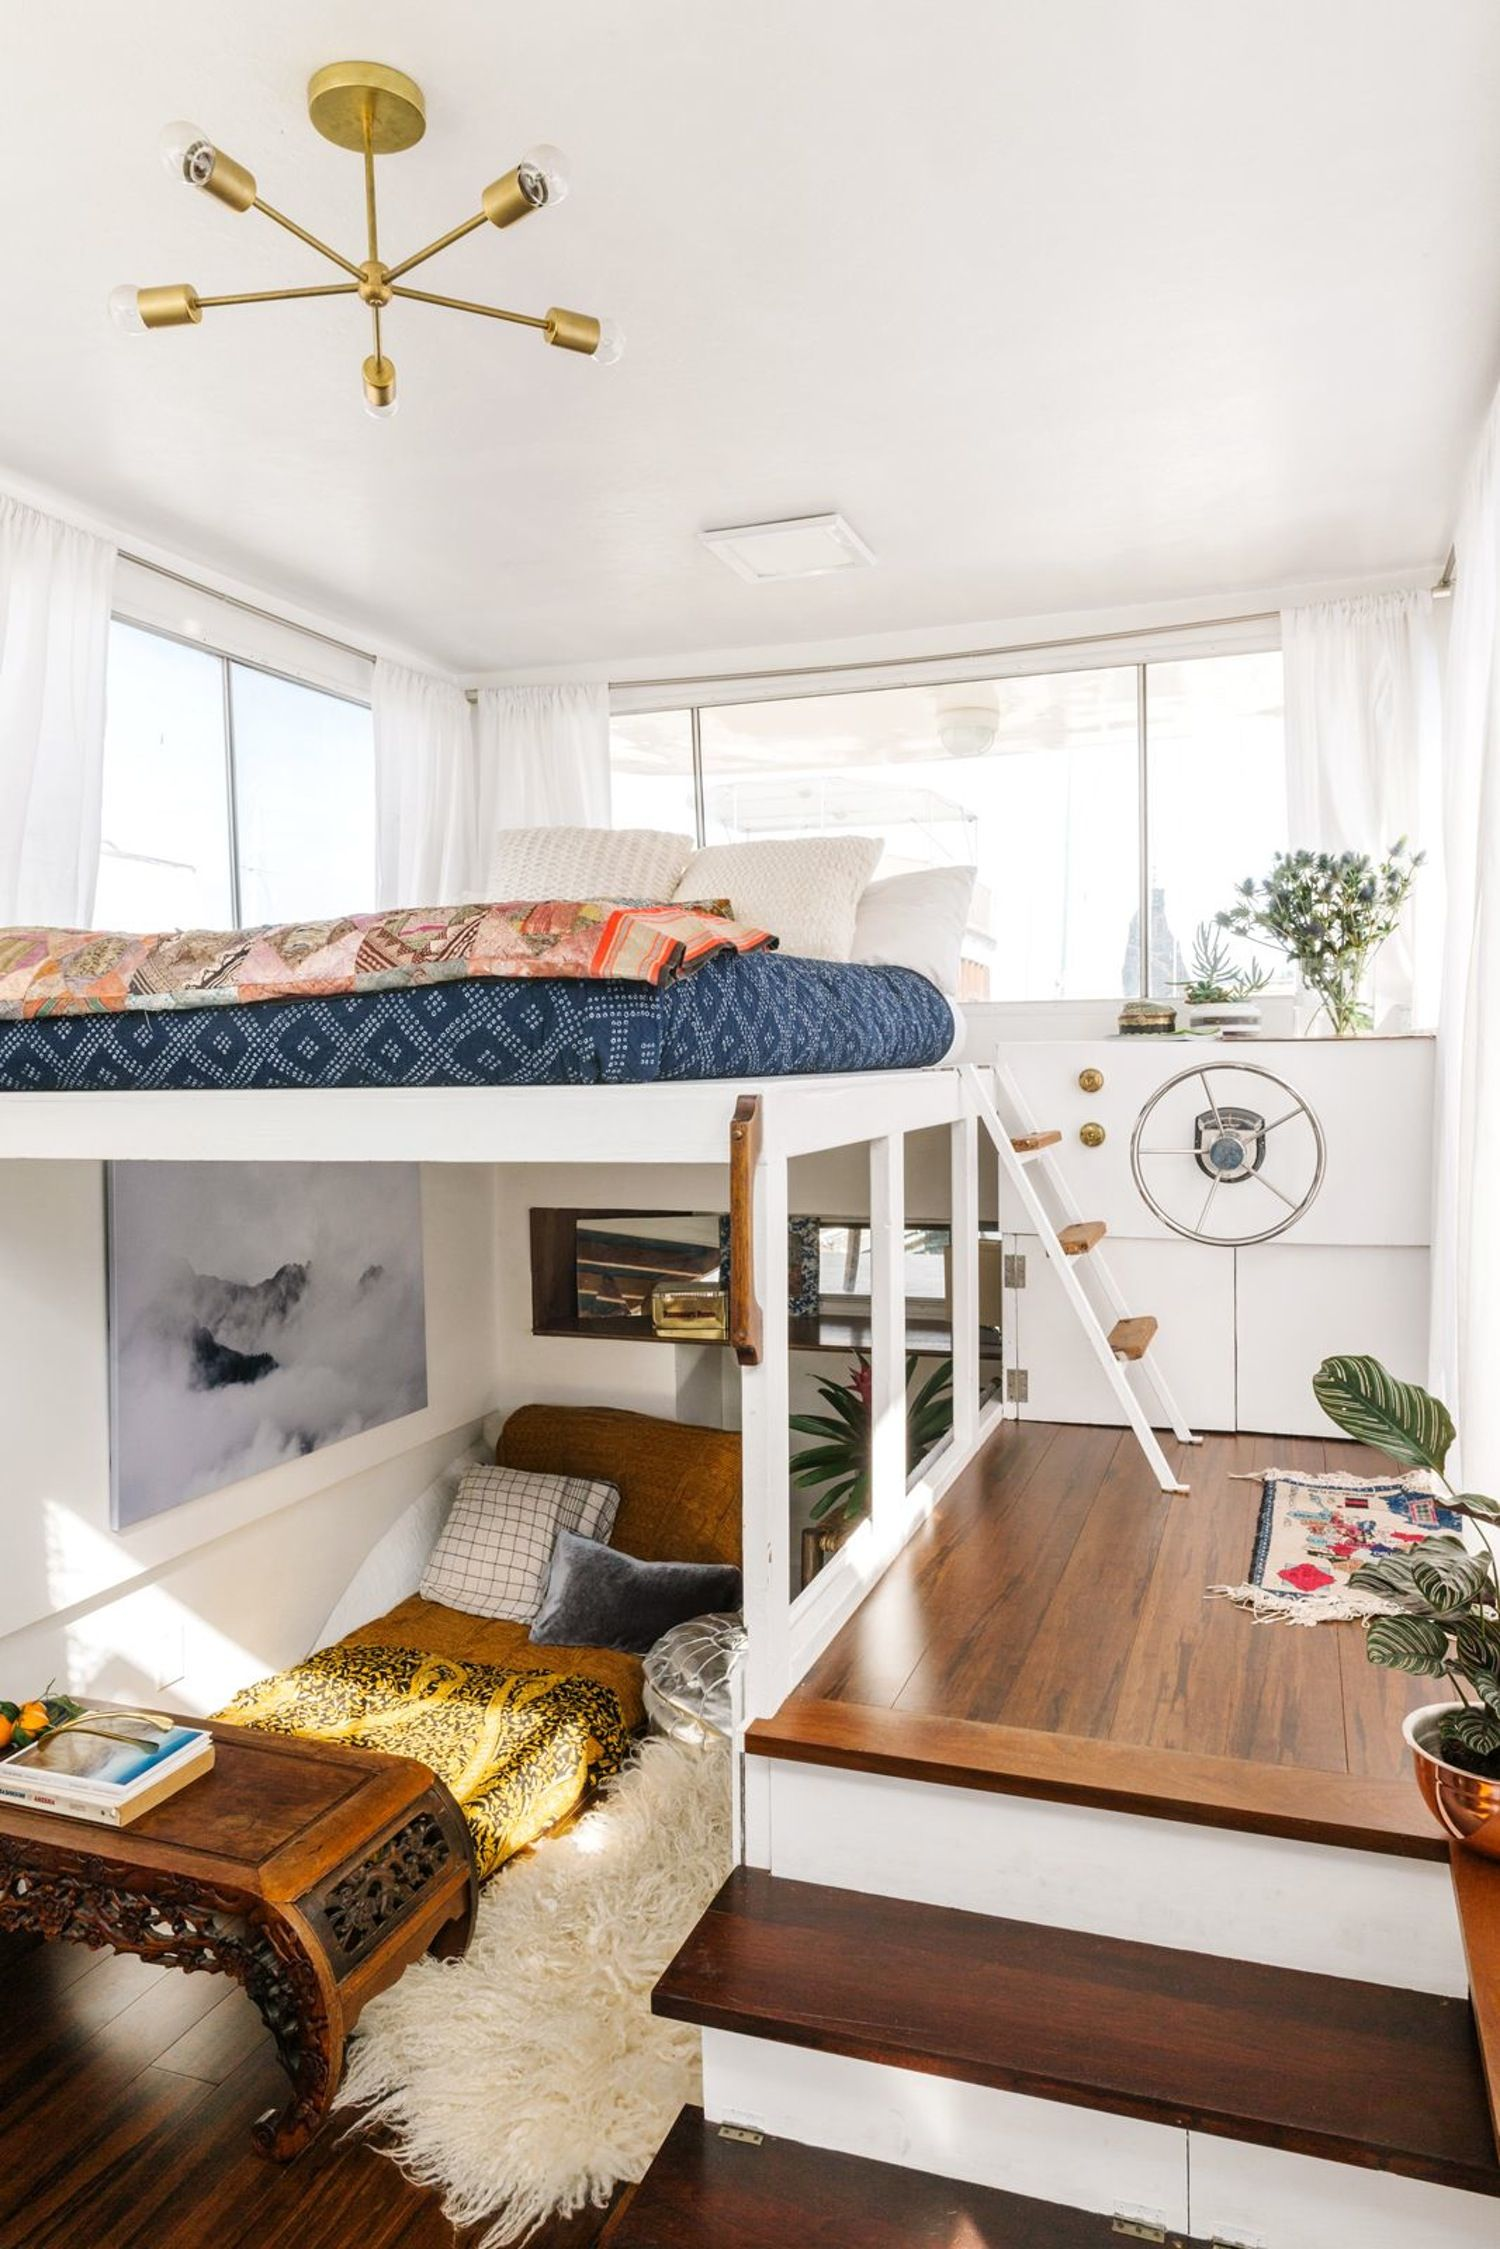 Instead of renting this san francisco couple bought a boat